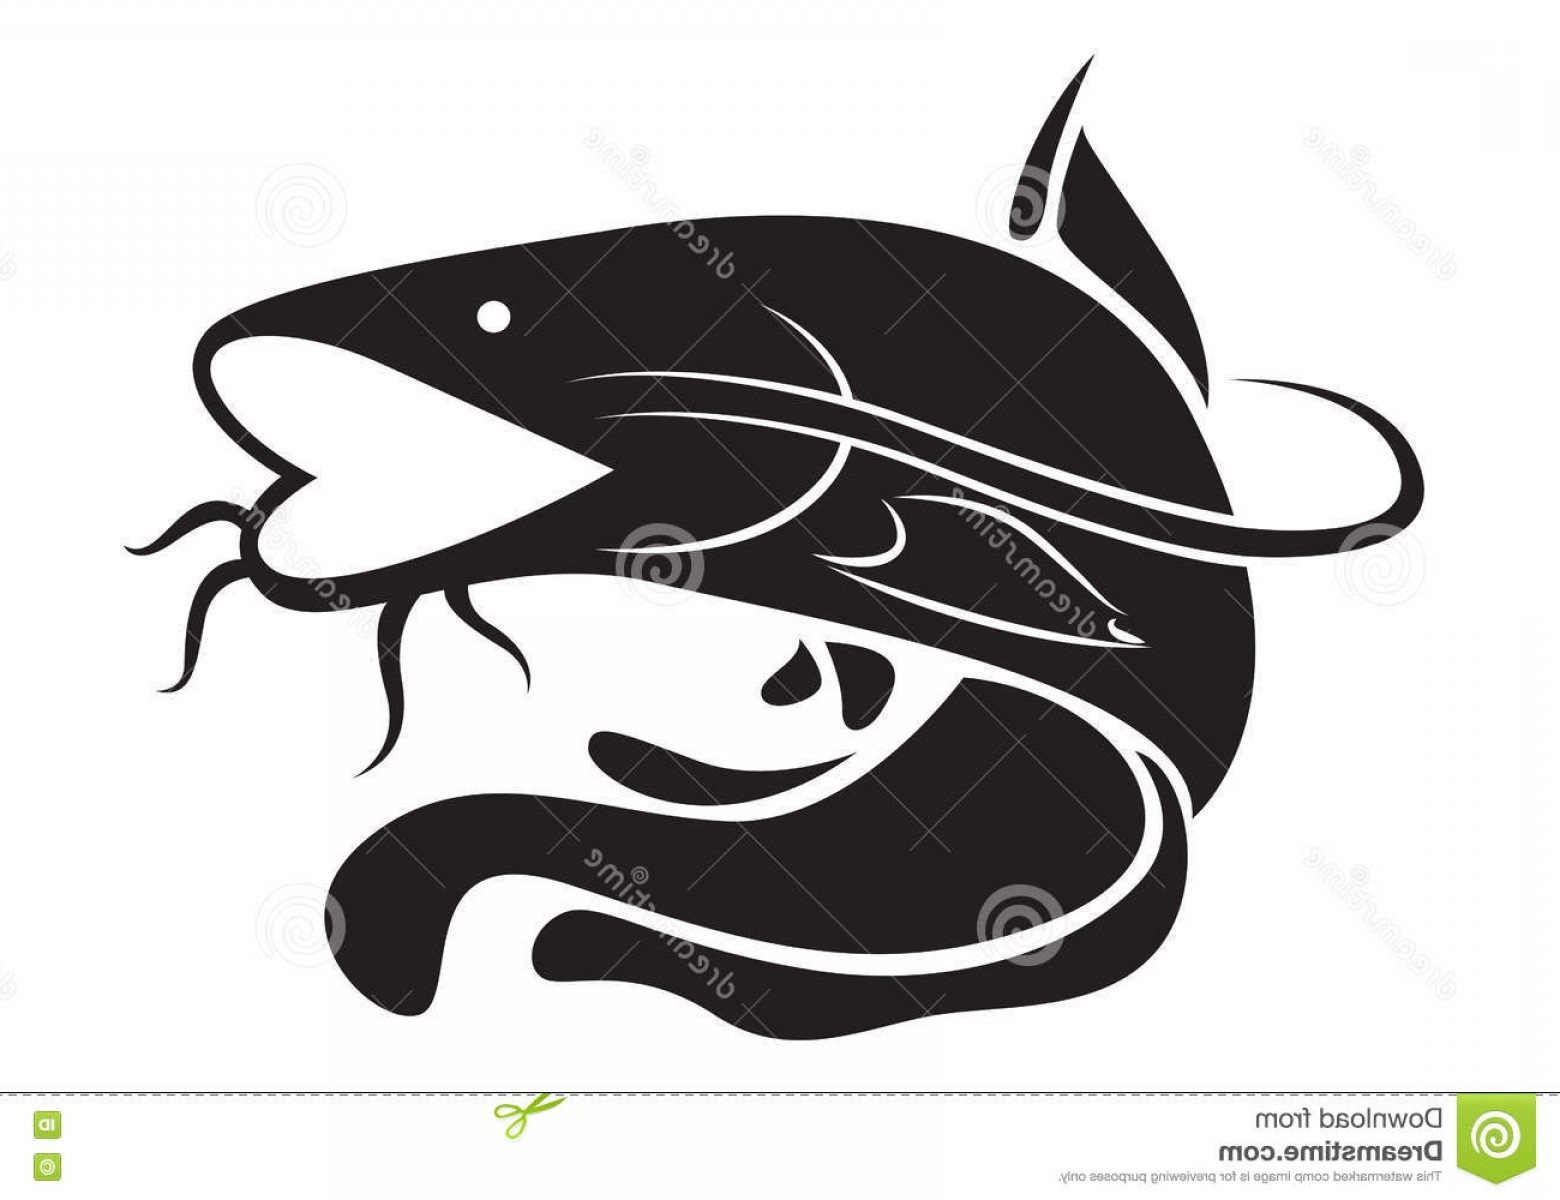 Catfish Vector Logo: Stock Illustration Graphic Catfish Vector Clip Art Black White Background Image